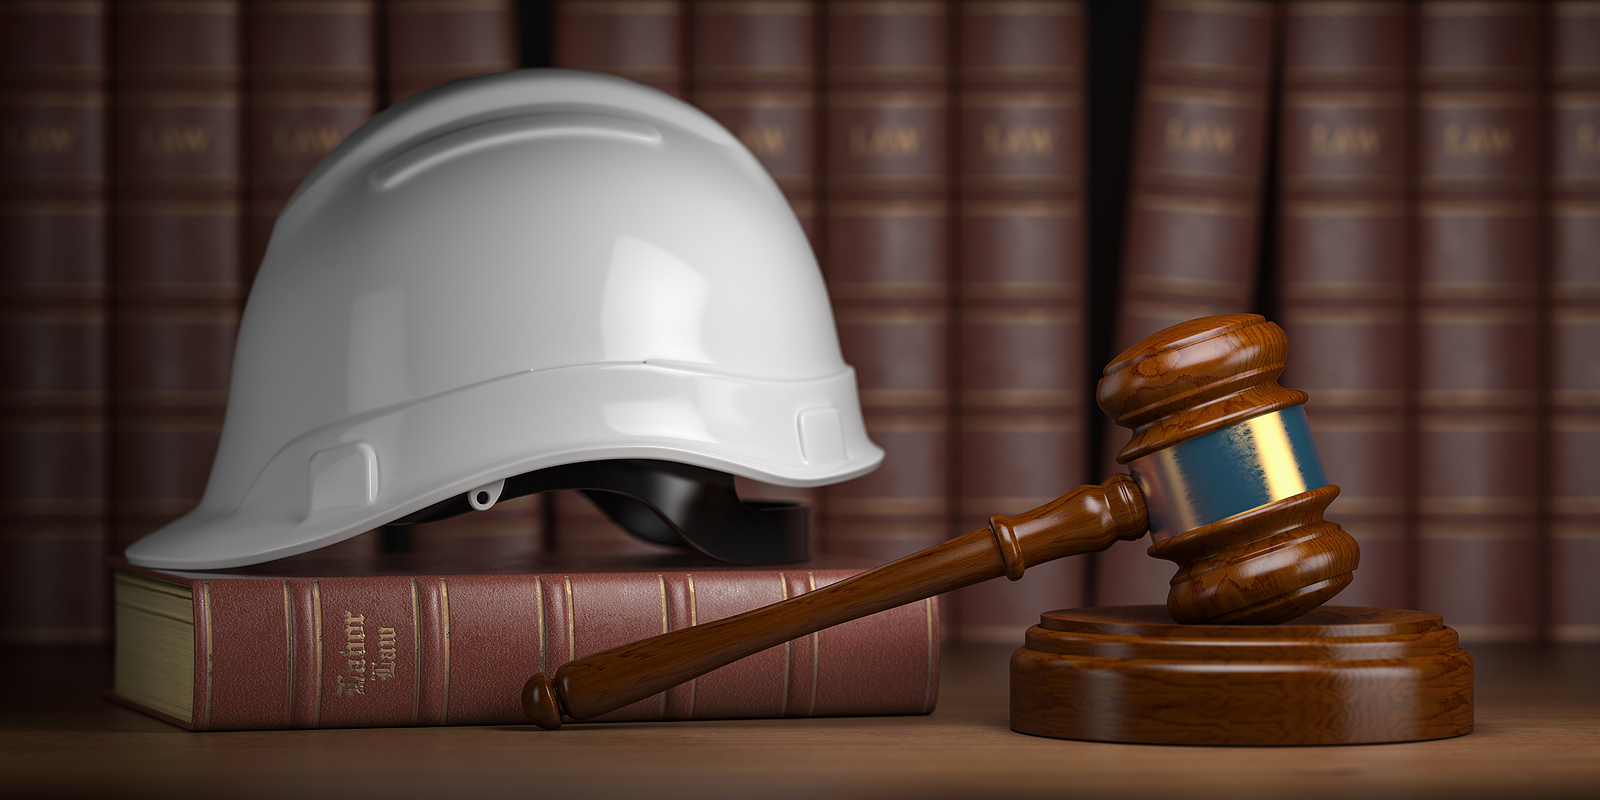 bigstock-Labor-law-concept-Gavel-with-352516577